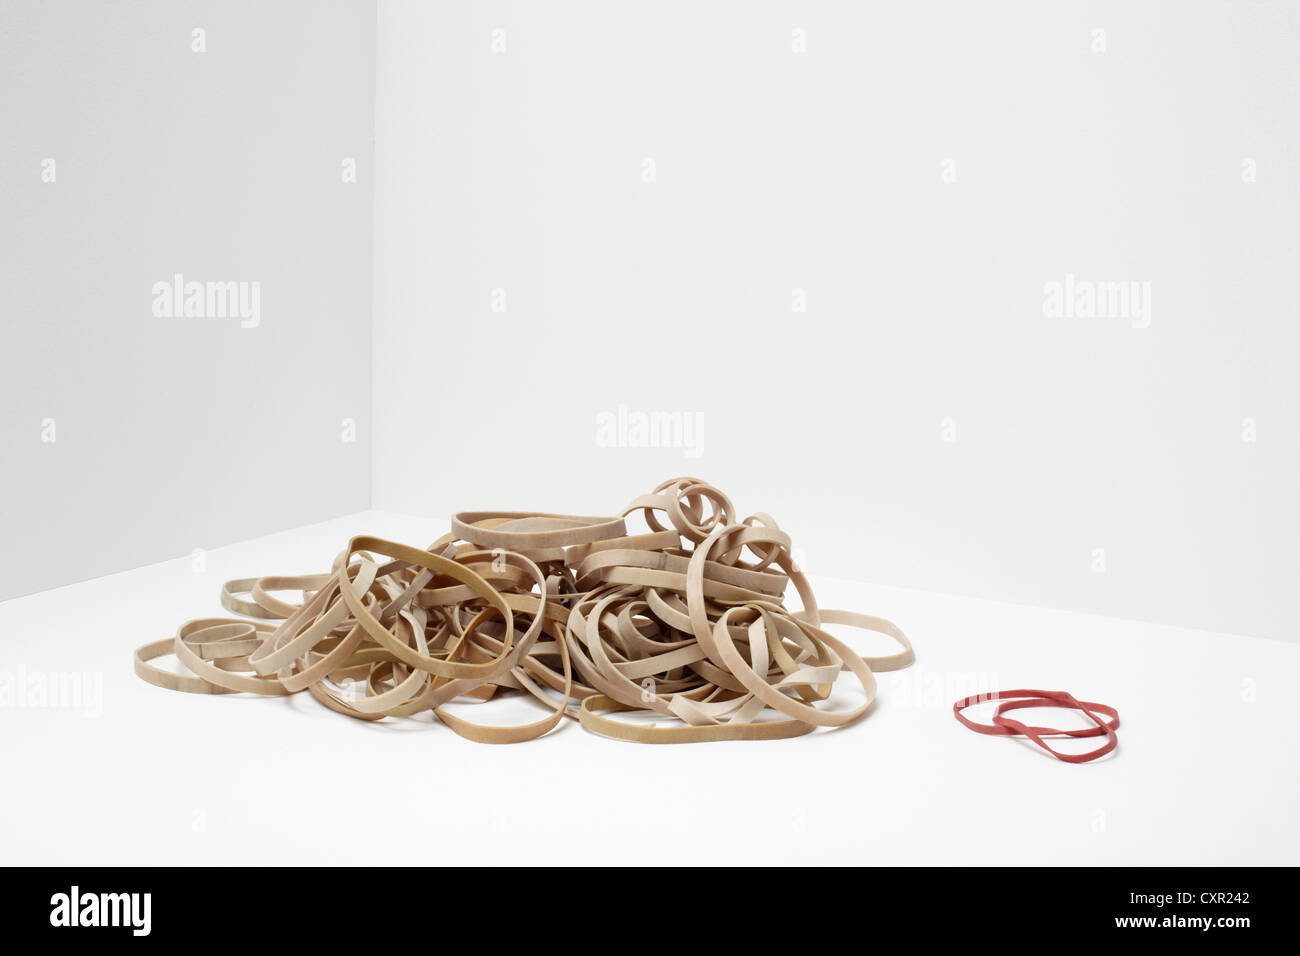 Stack of rubber bands with two red rubber bands - Stock Image